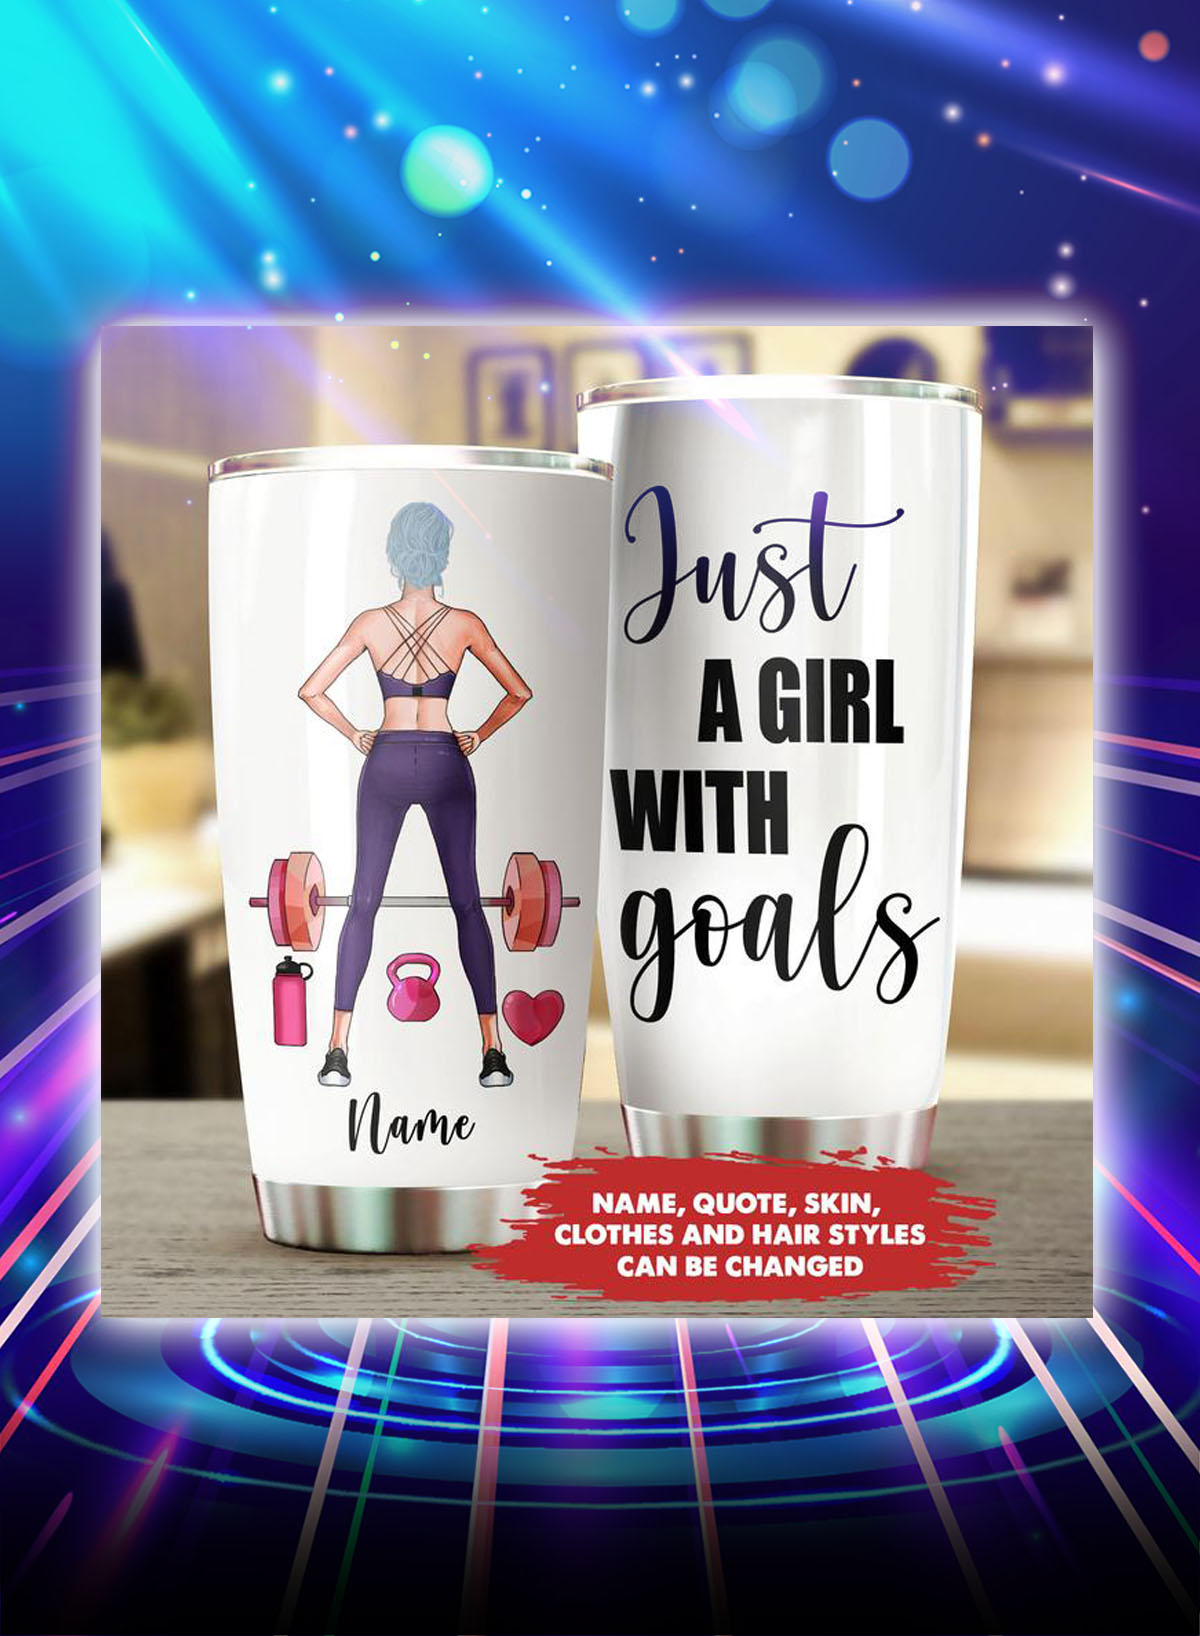 Fitness just a girl with goals personalized customize name tumbler